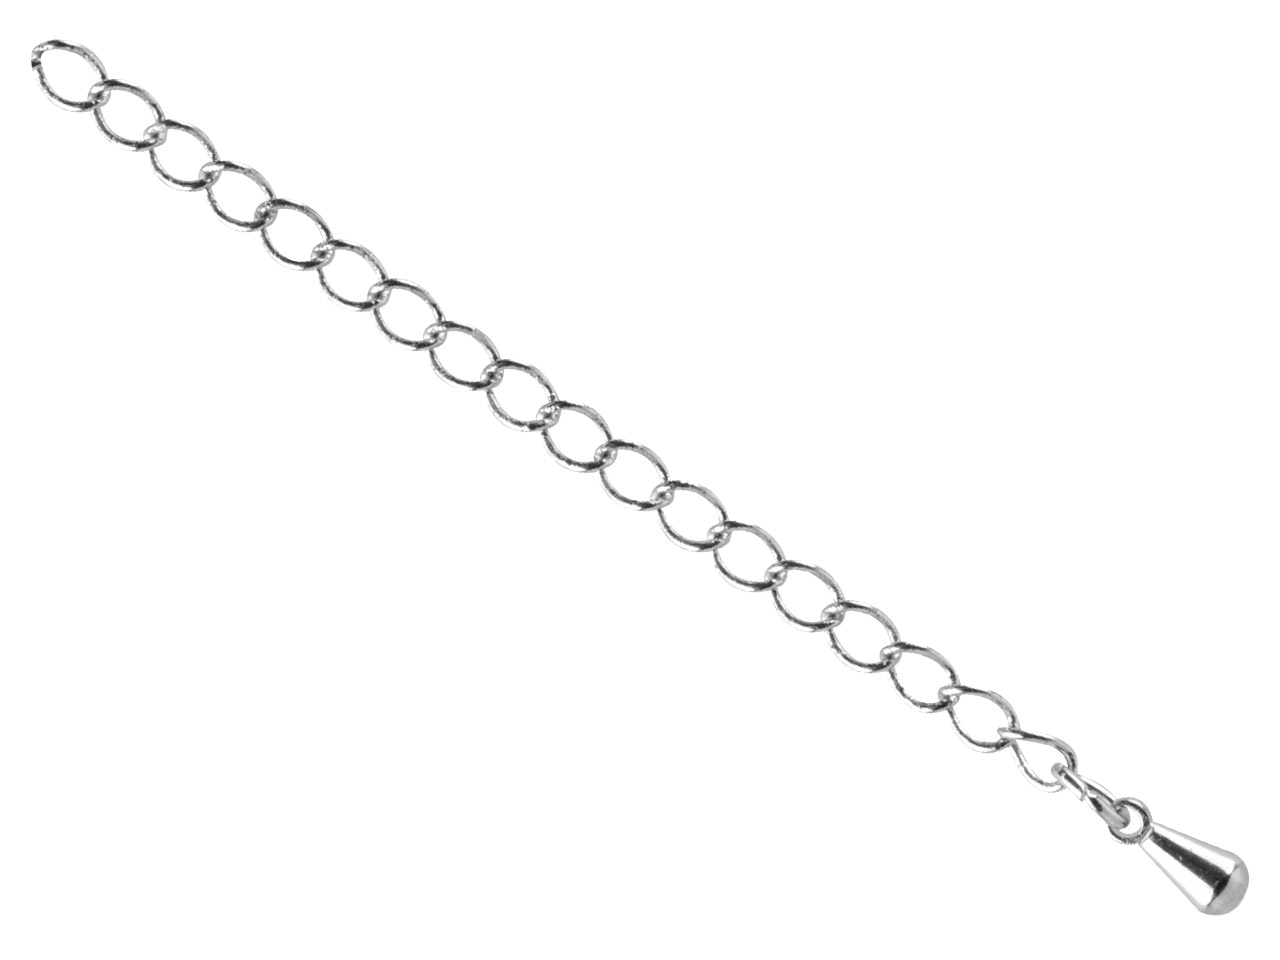 Surgical Steel 4.5mm Extension     Chain With Dropper, Large